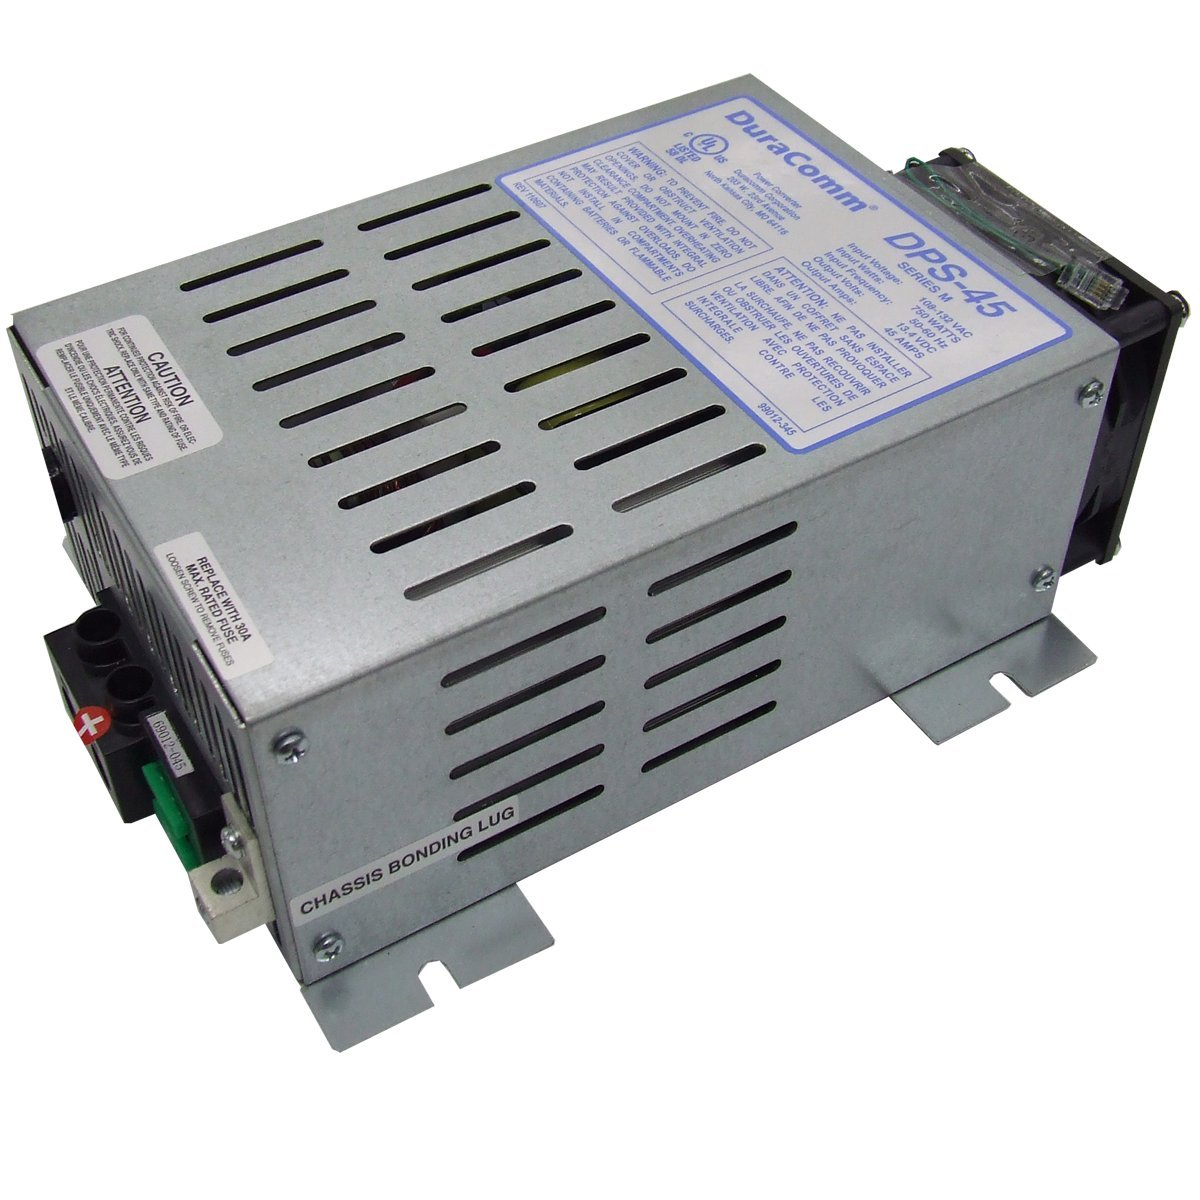 DuraComm DPS-45 Power Source Utilities with Low Noise Supply